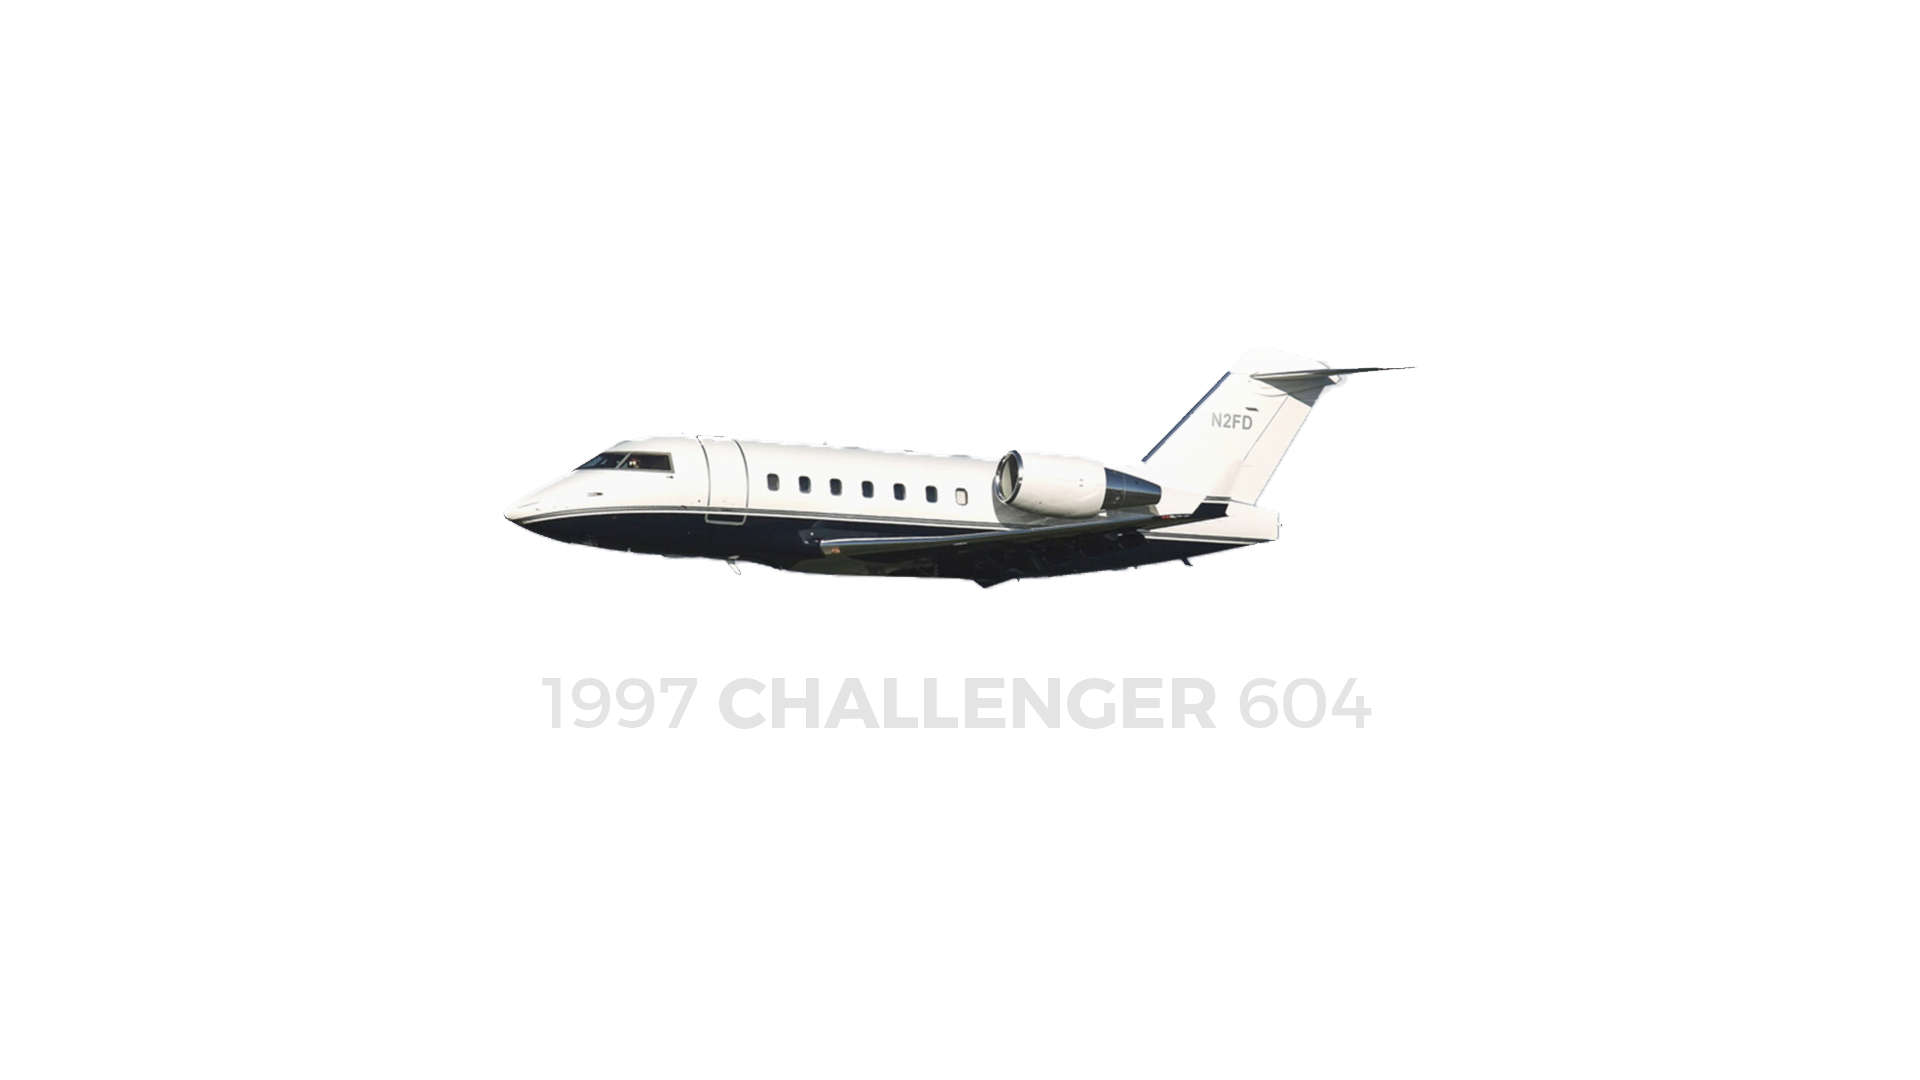 Most expensive aircraft, luxury private jets Bombardier Global express, Falcon Dassault, Gulfstream for sale for super rich